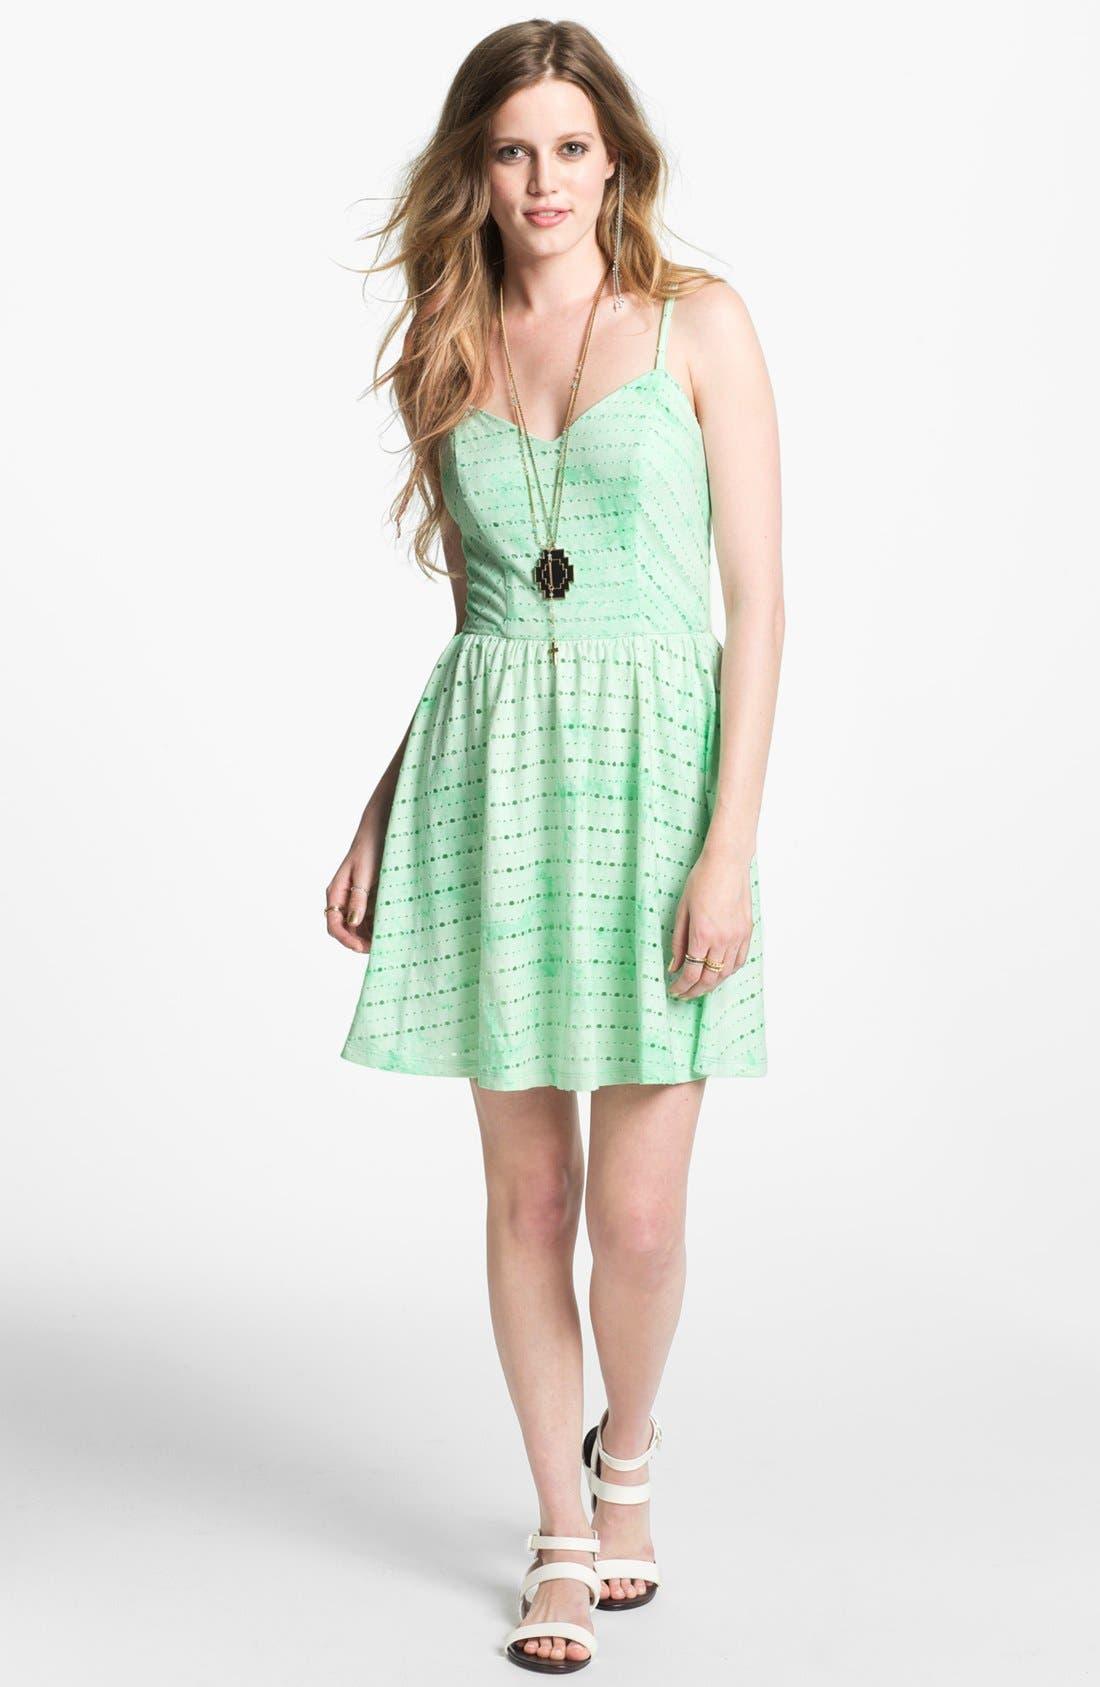 Alternate Image 1 Selected - Socialite Tie Dye Skater Dress (Juniors)